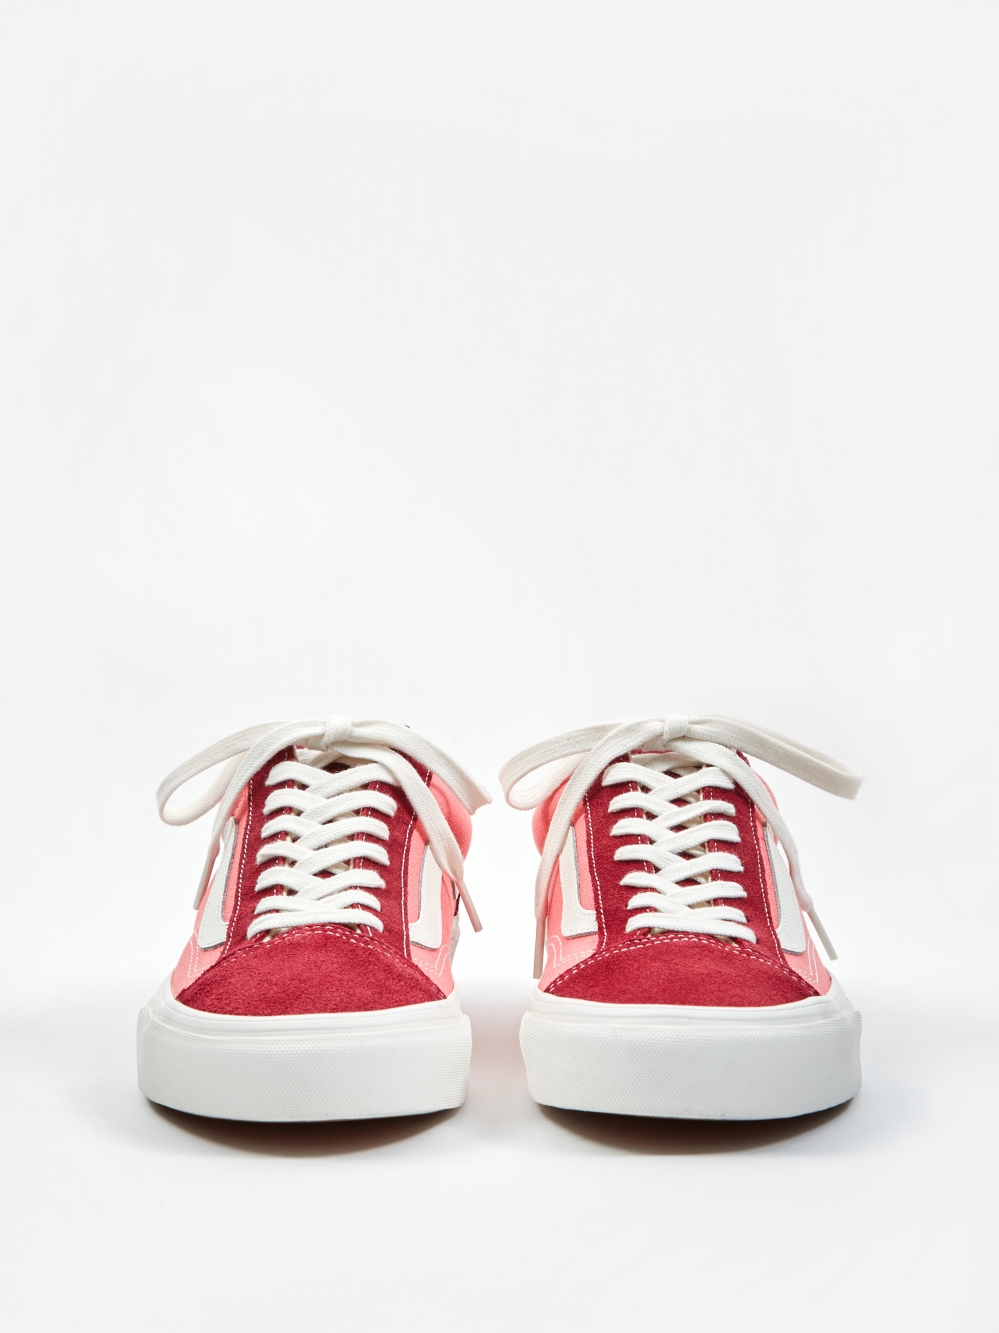 VANS Old Skool (Vintage Sport) Style 36 Rumba Red